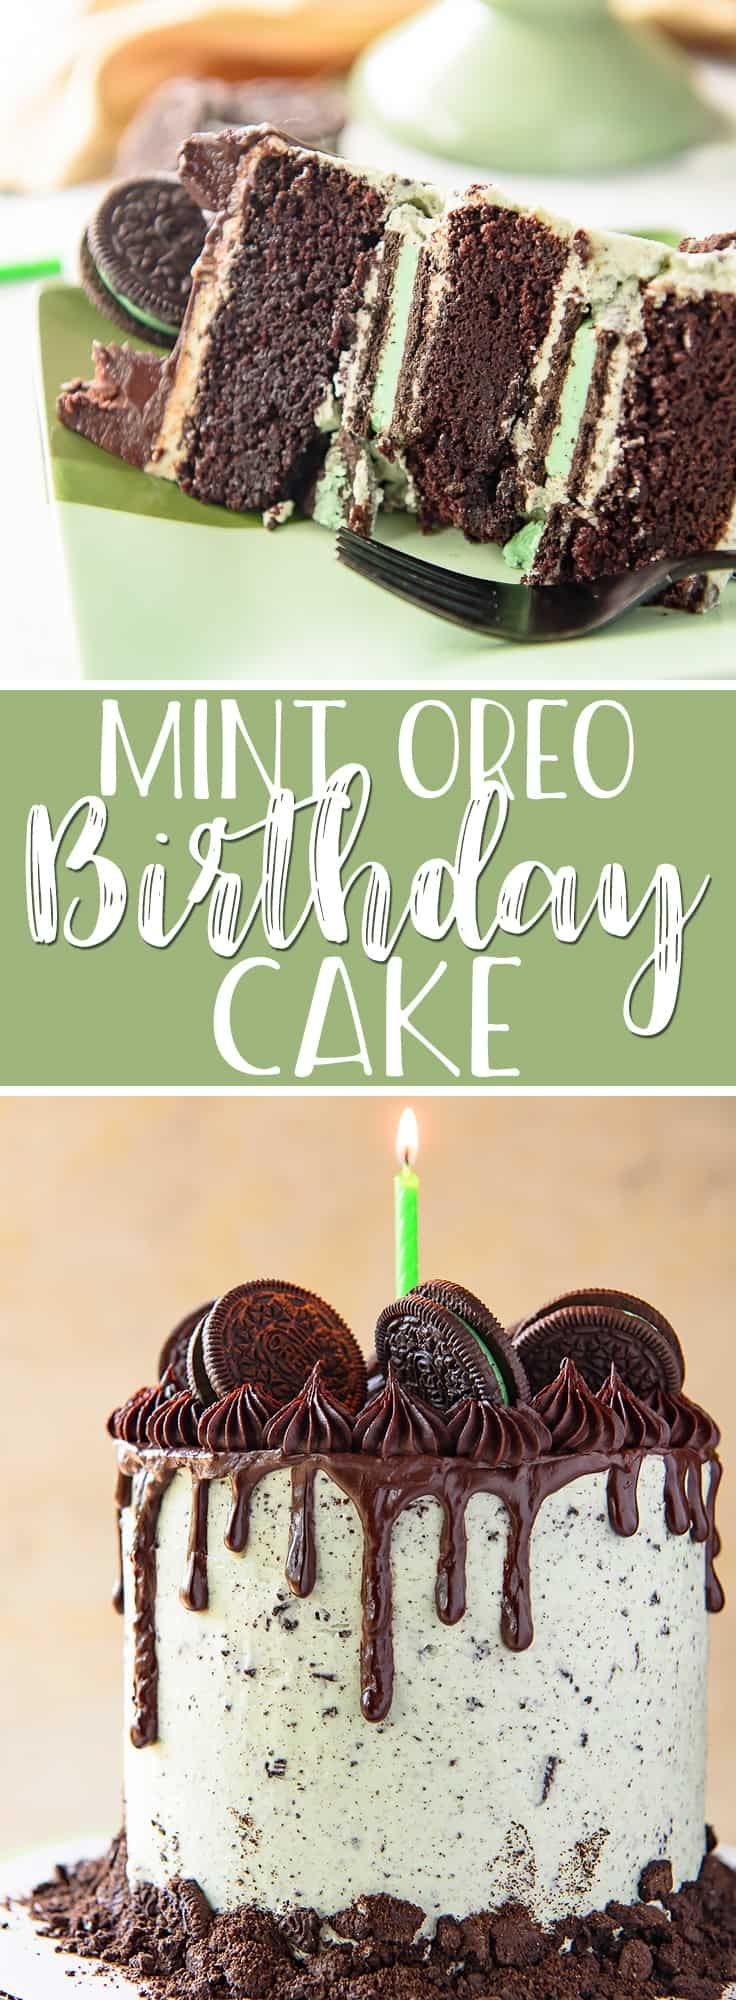 This Mint Oreo Cake makes for one fabulous birthday cake for mint chocolate lovers! Dark chocolate cake and tons of whole Oreos are covered in fluffy mint cookies and cream buttercream, then garnished with chocolate ganache and even more cookies.